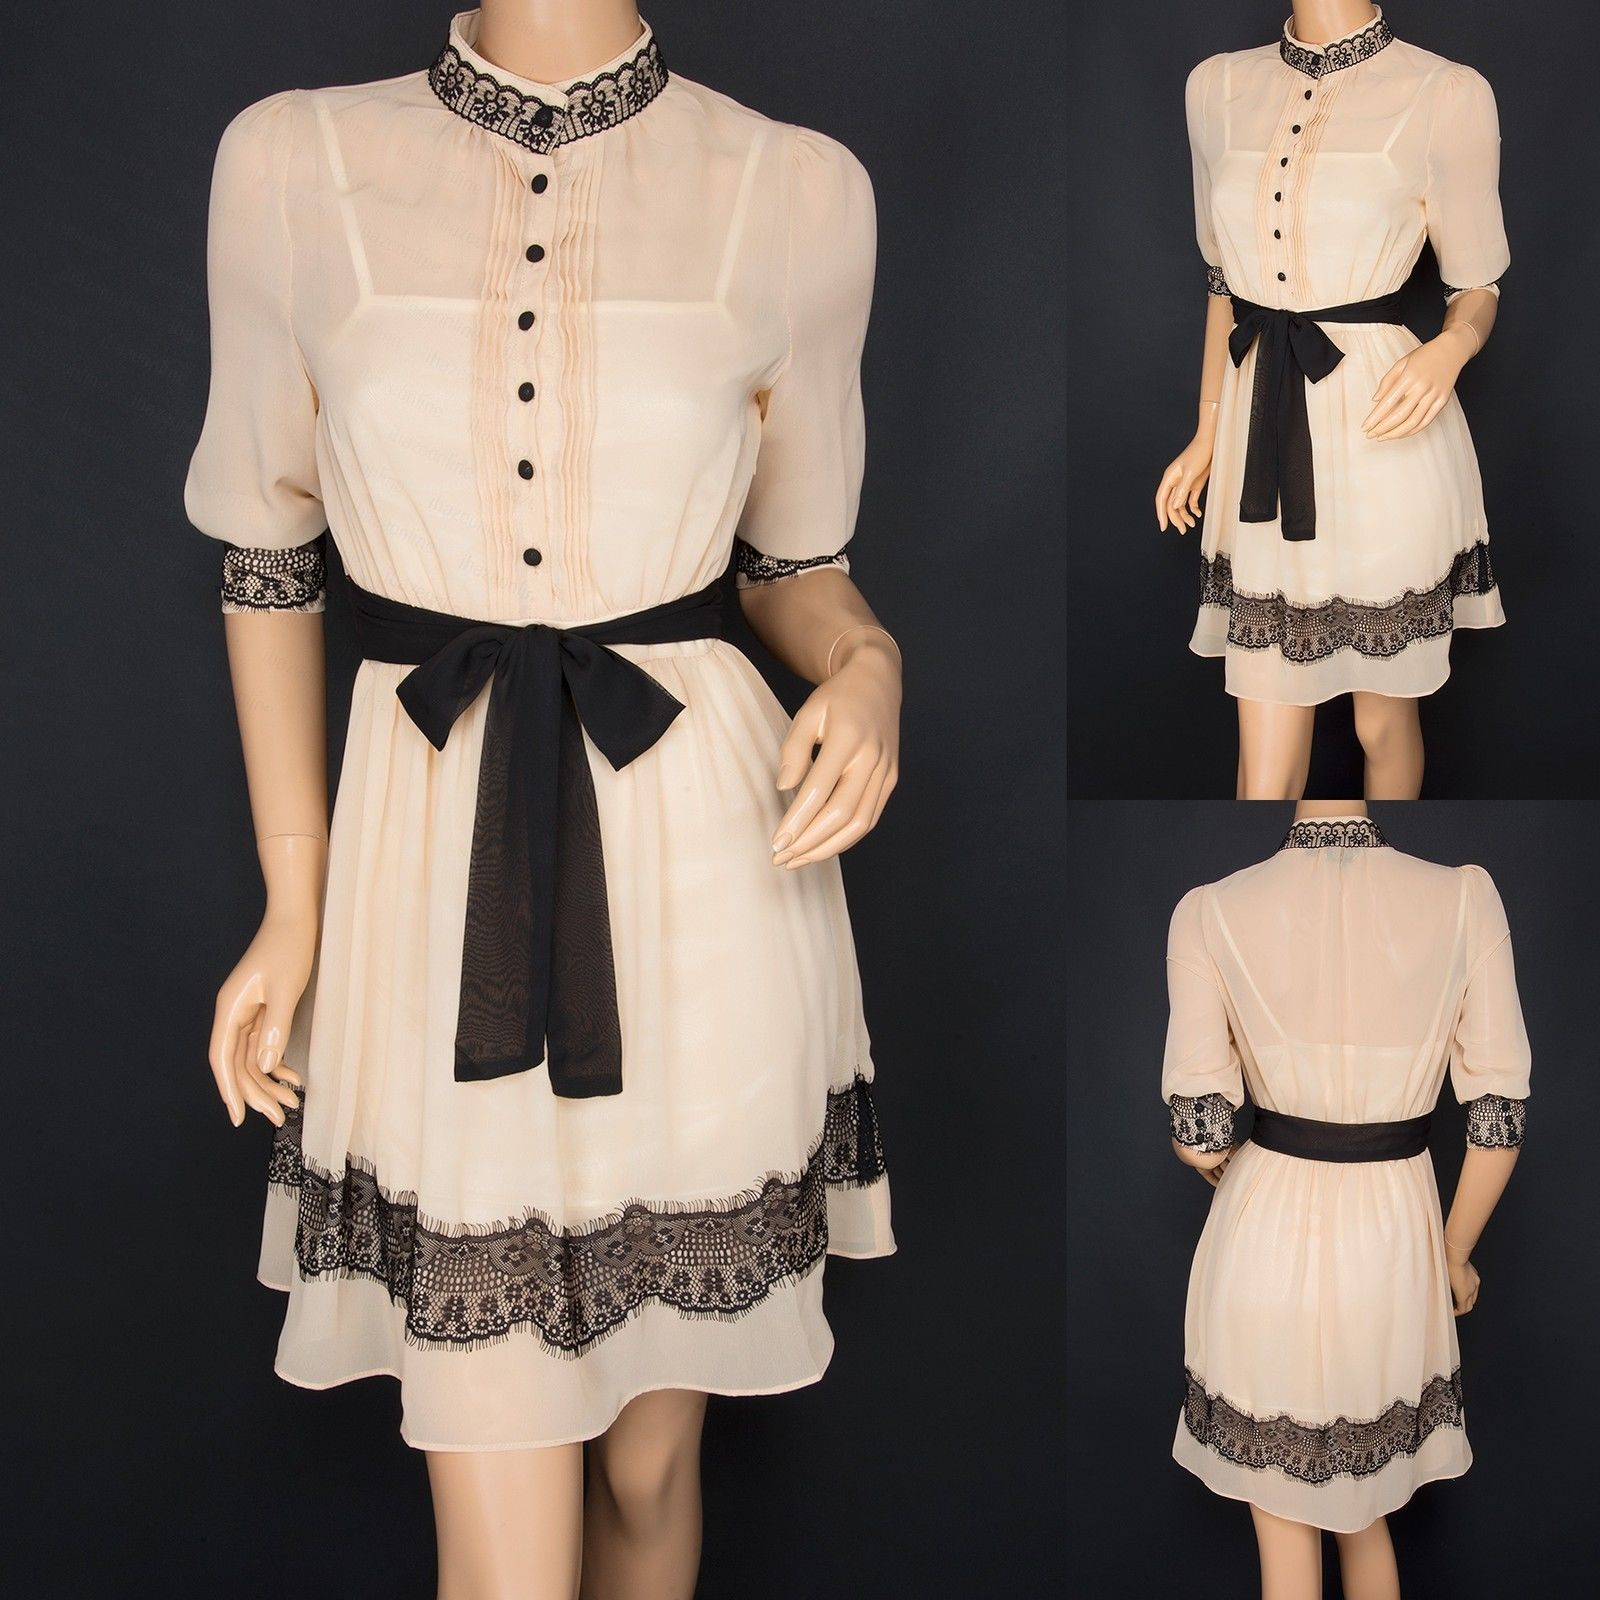 COWGIRL GYPSY DRESS Ivory Sheer Chiffon Button Front Black Lace Belted & Lined Western Dress